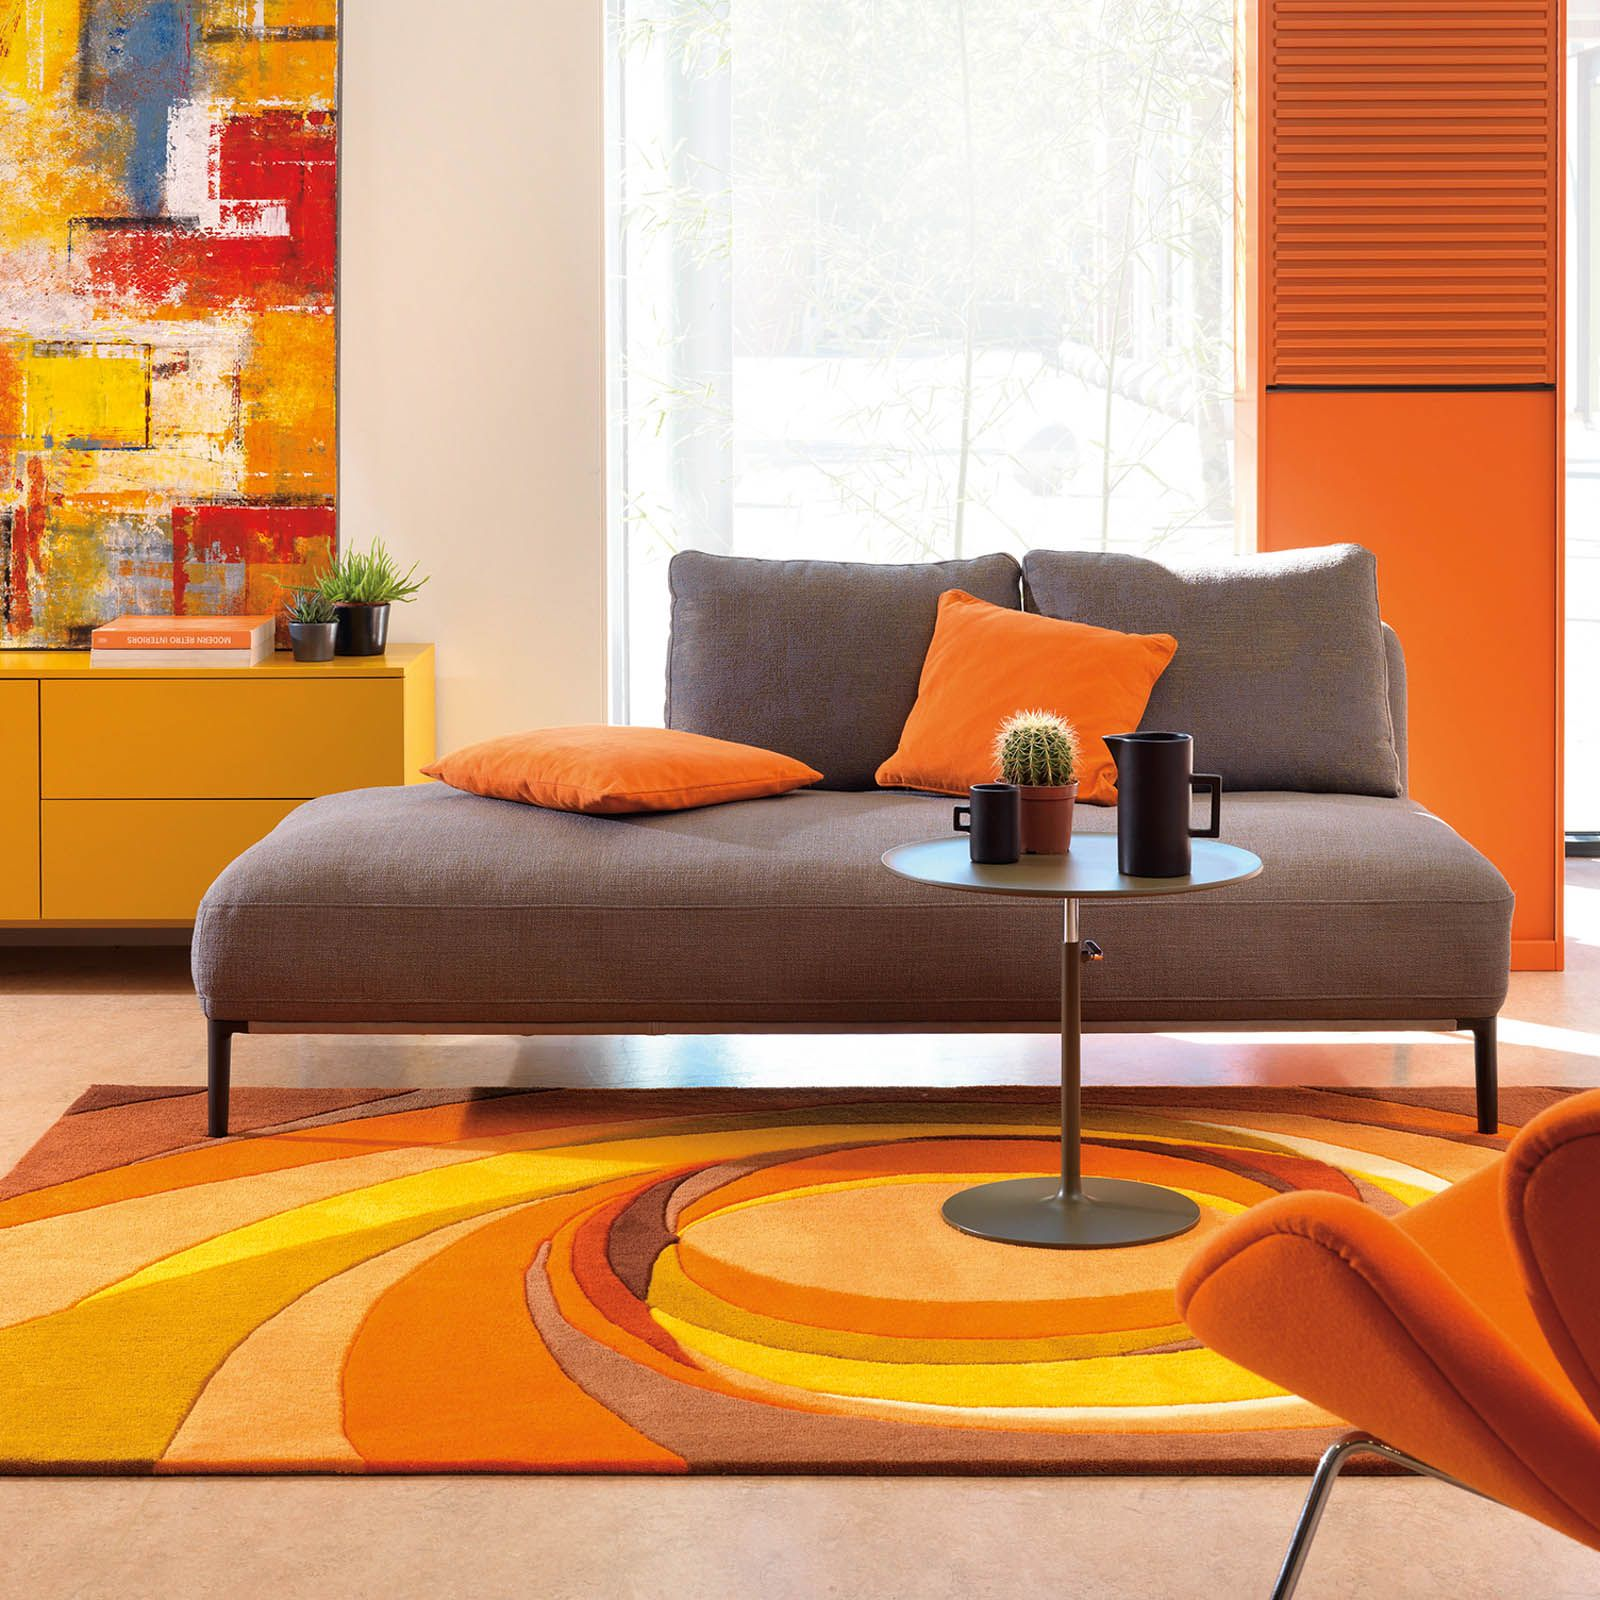 The Modern Line collection by Arte Espina features interesting new ...